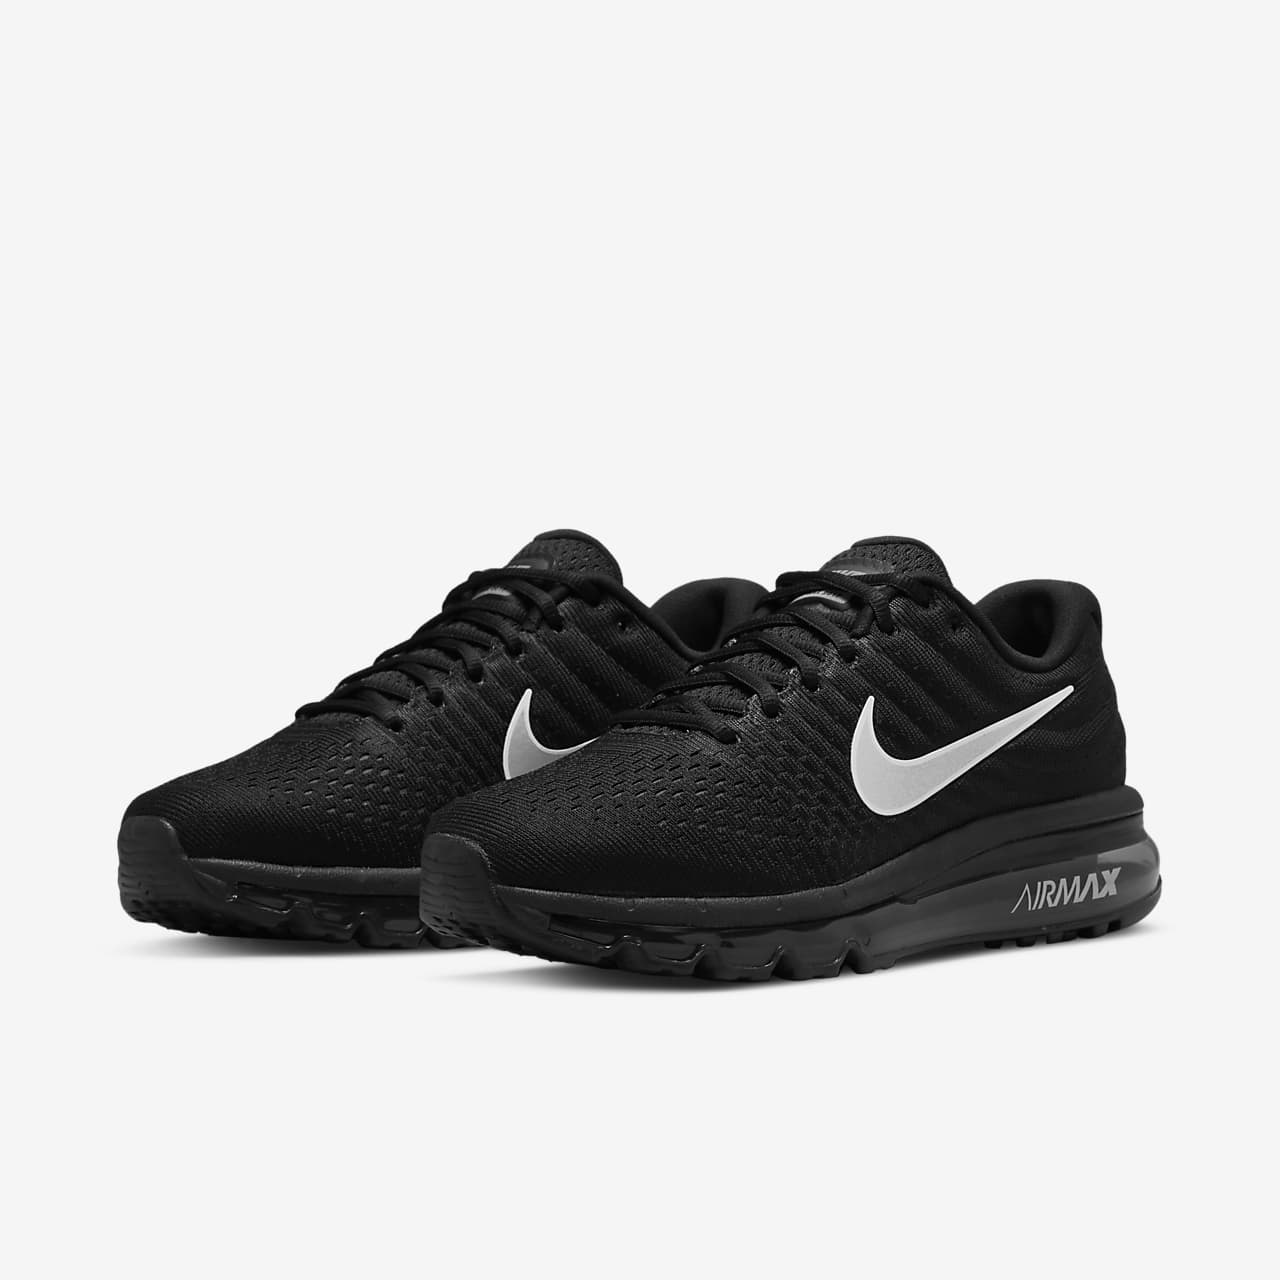 Top Quality Nike Flyknit Air Max Cheap sale Black White-Purple V